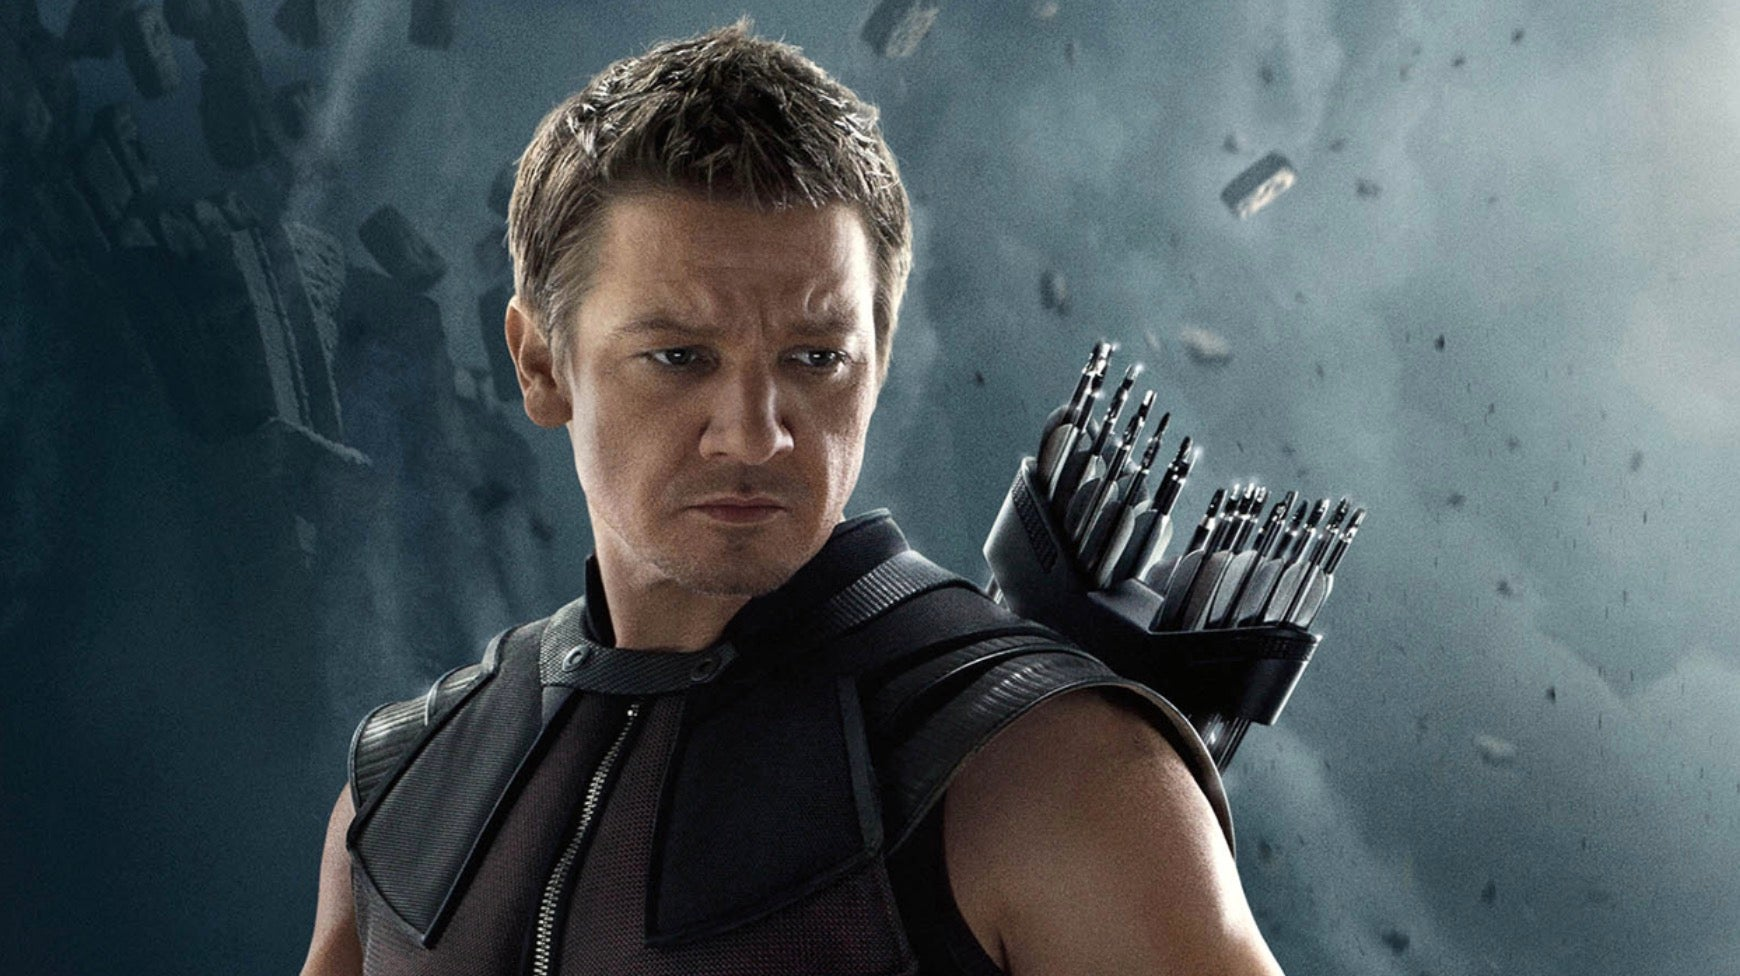 The Best Thing To Ever Happen To Hawkeye Is Not Being On The Infinity War Poster